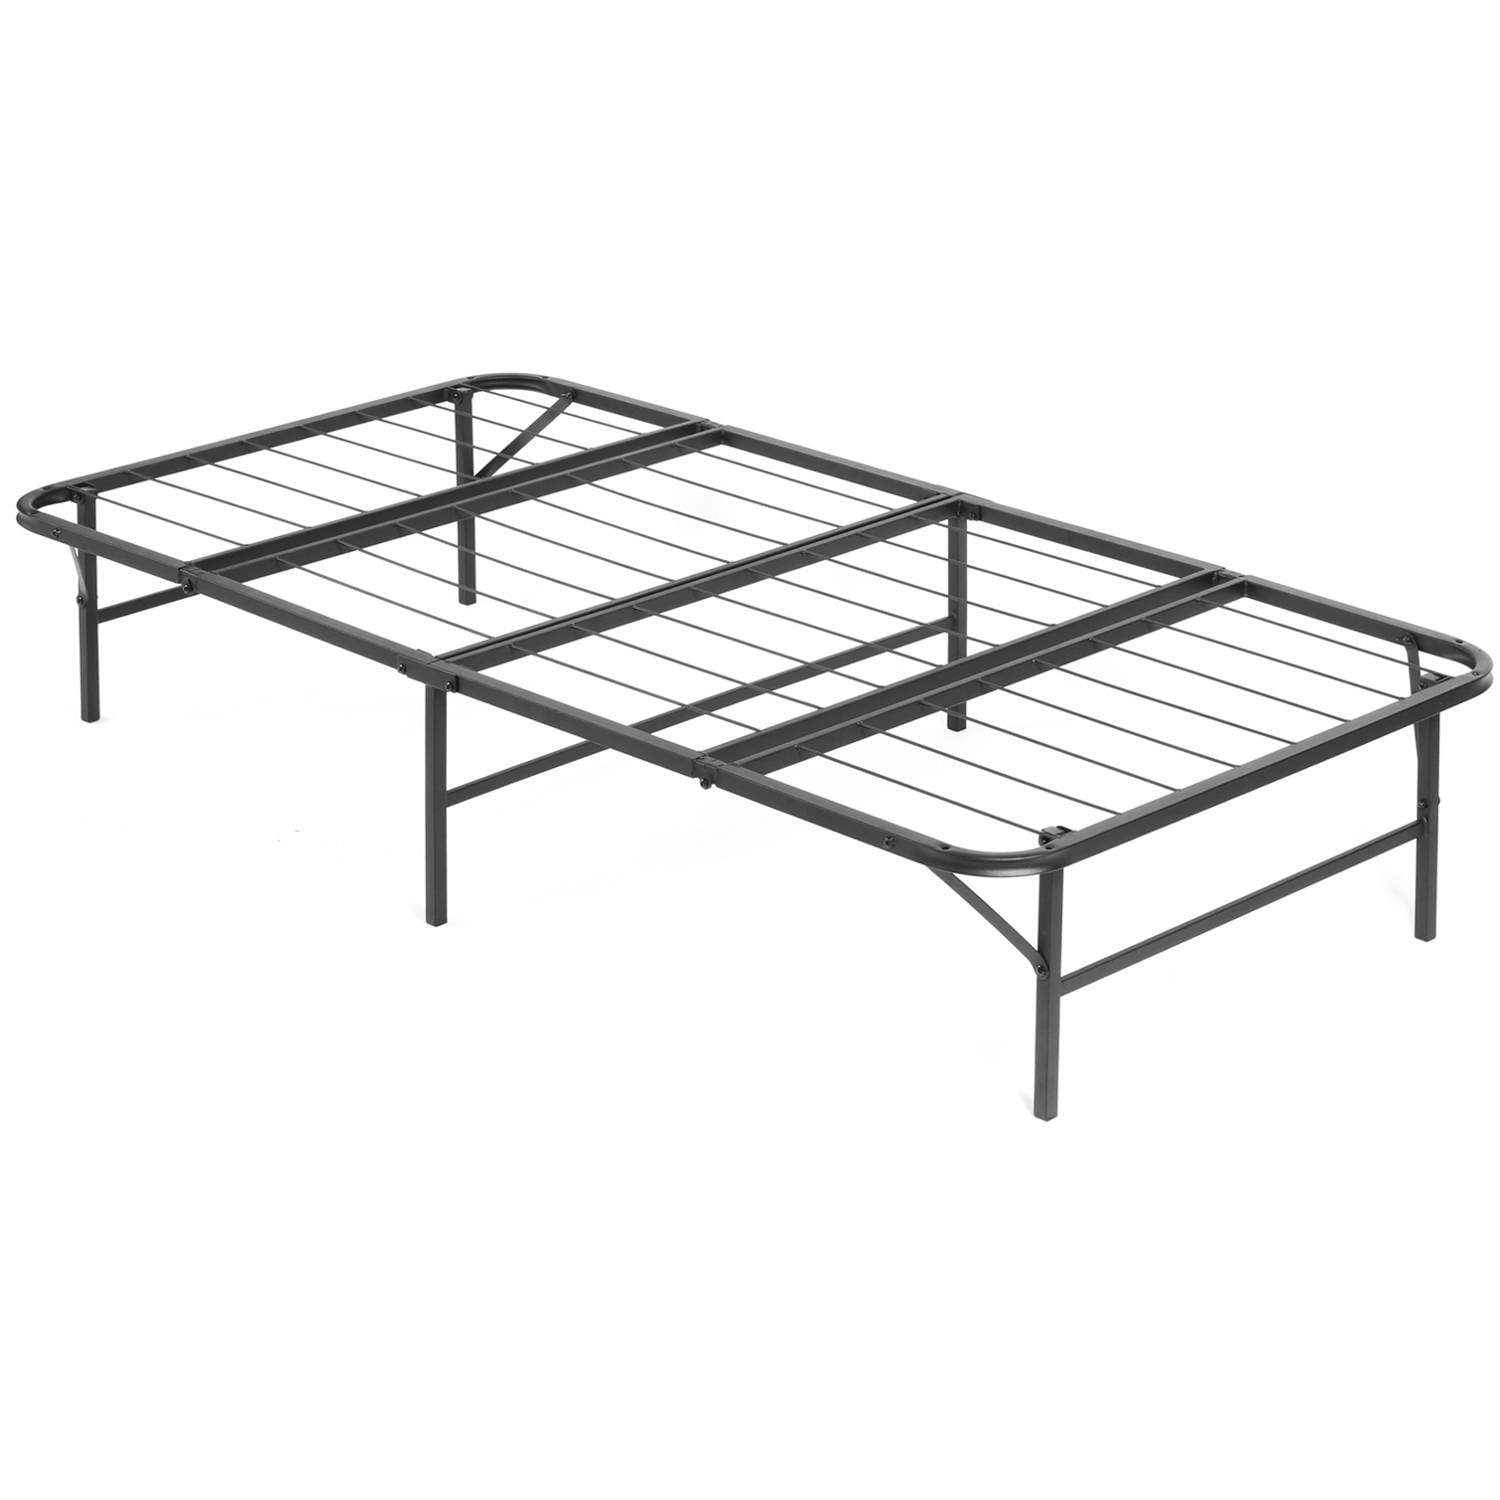 Pragma Simple Base Quad-Fold Bed Frame, Multiple Sizes - Walmart.com